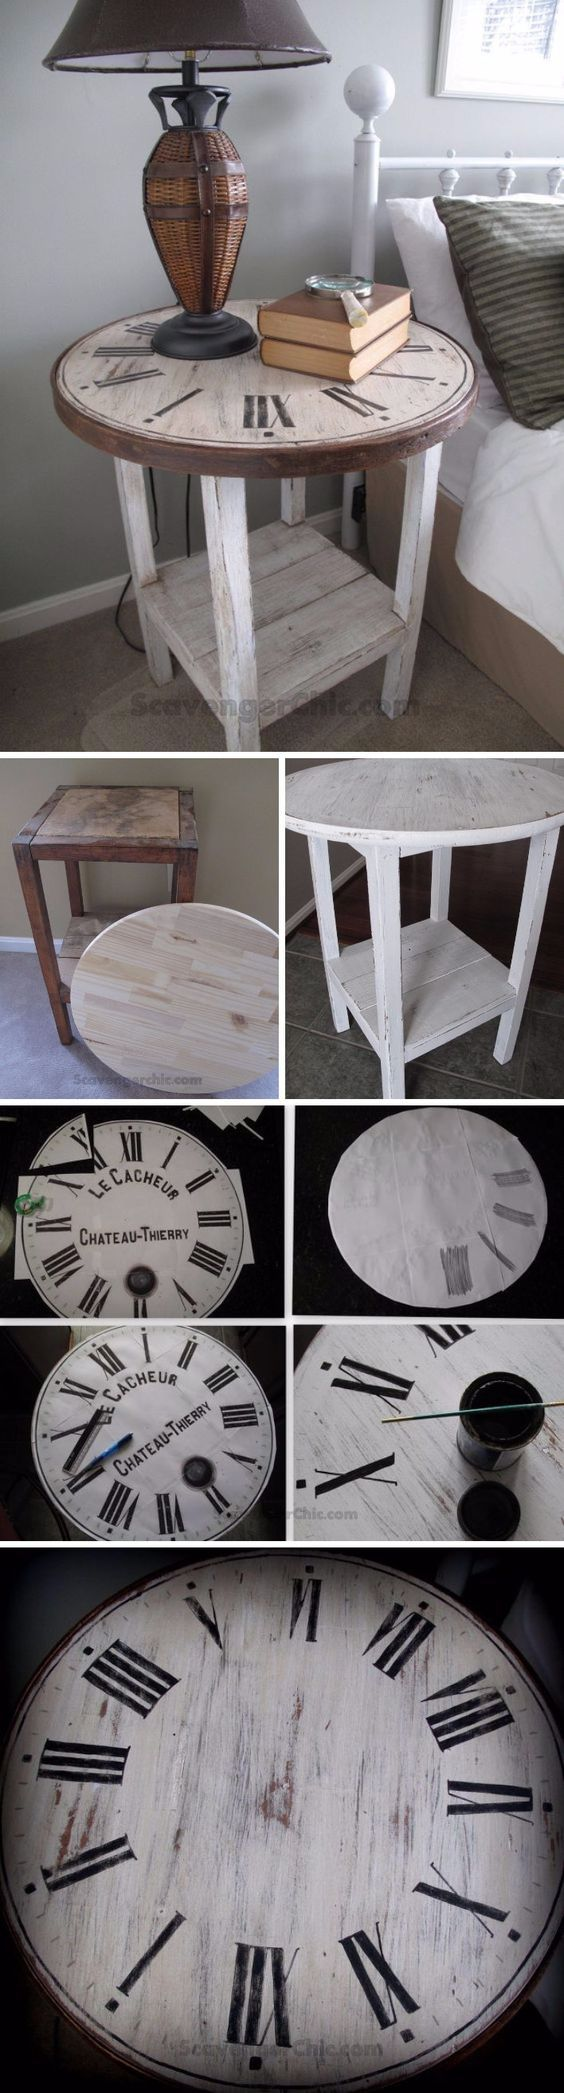 DIY Vintage Clock Table from a Flea Market Find.                                                                                                                                                                                 More